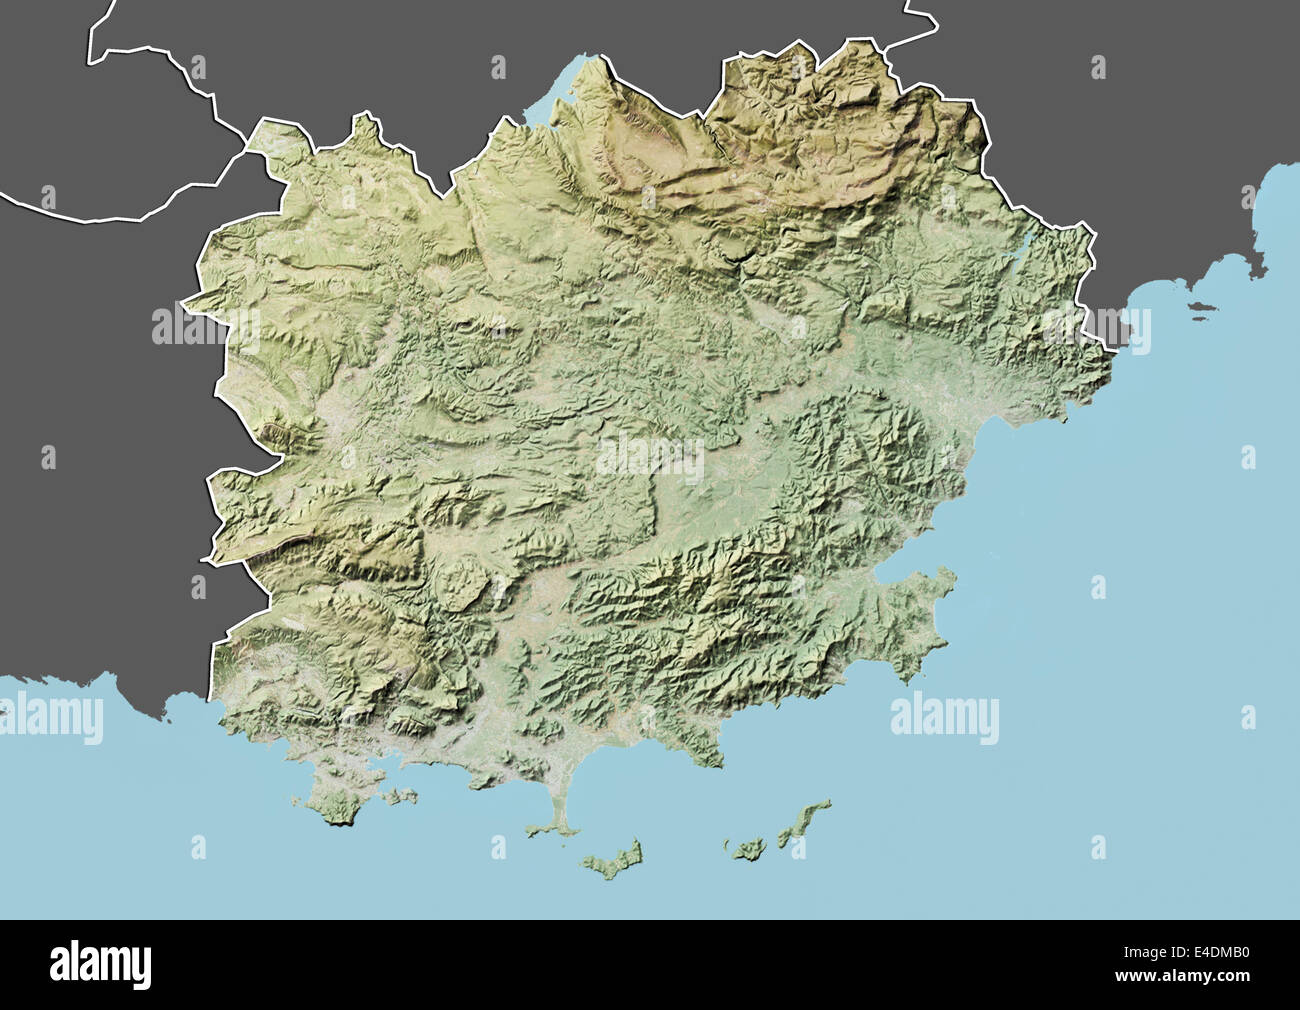 Map Of The Alps In France.Relief Map French Alps Stock Photos Relief Map French Alps Stock